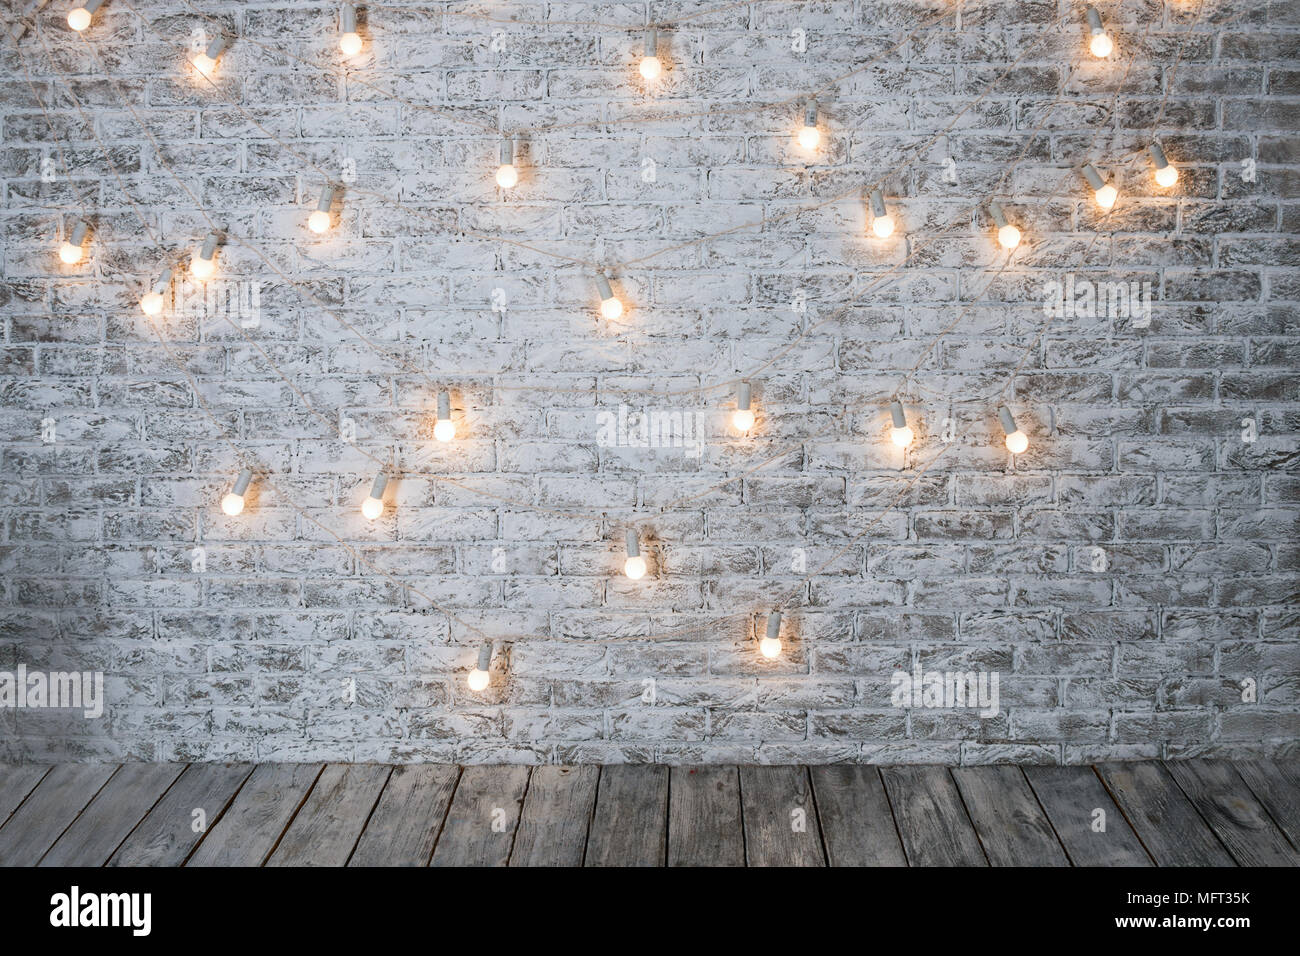 Light Bulbs On White Brick Background With Wooden Floor. Vintage Edison  Light Bulbs Garland In Loft Interior. Rustic Texture. Retro Whitewashed Old  Br